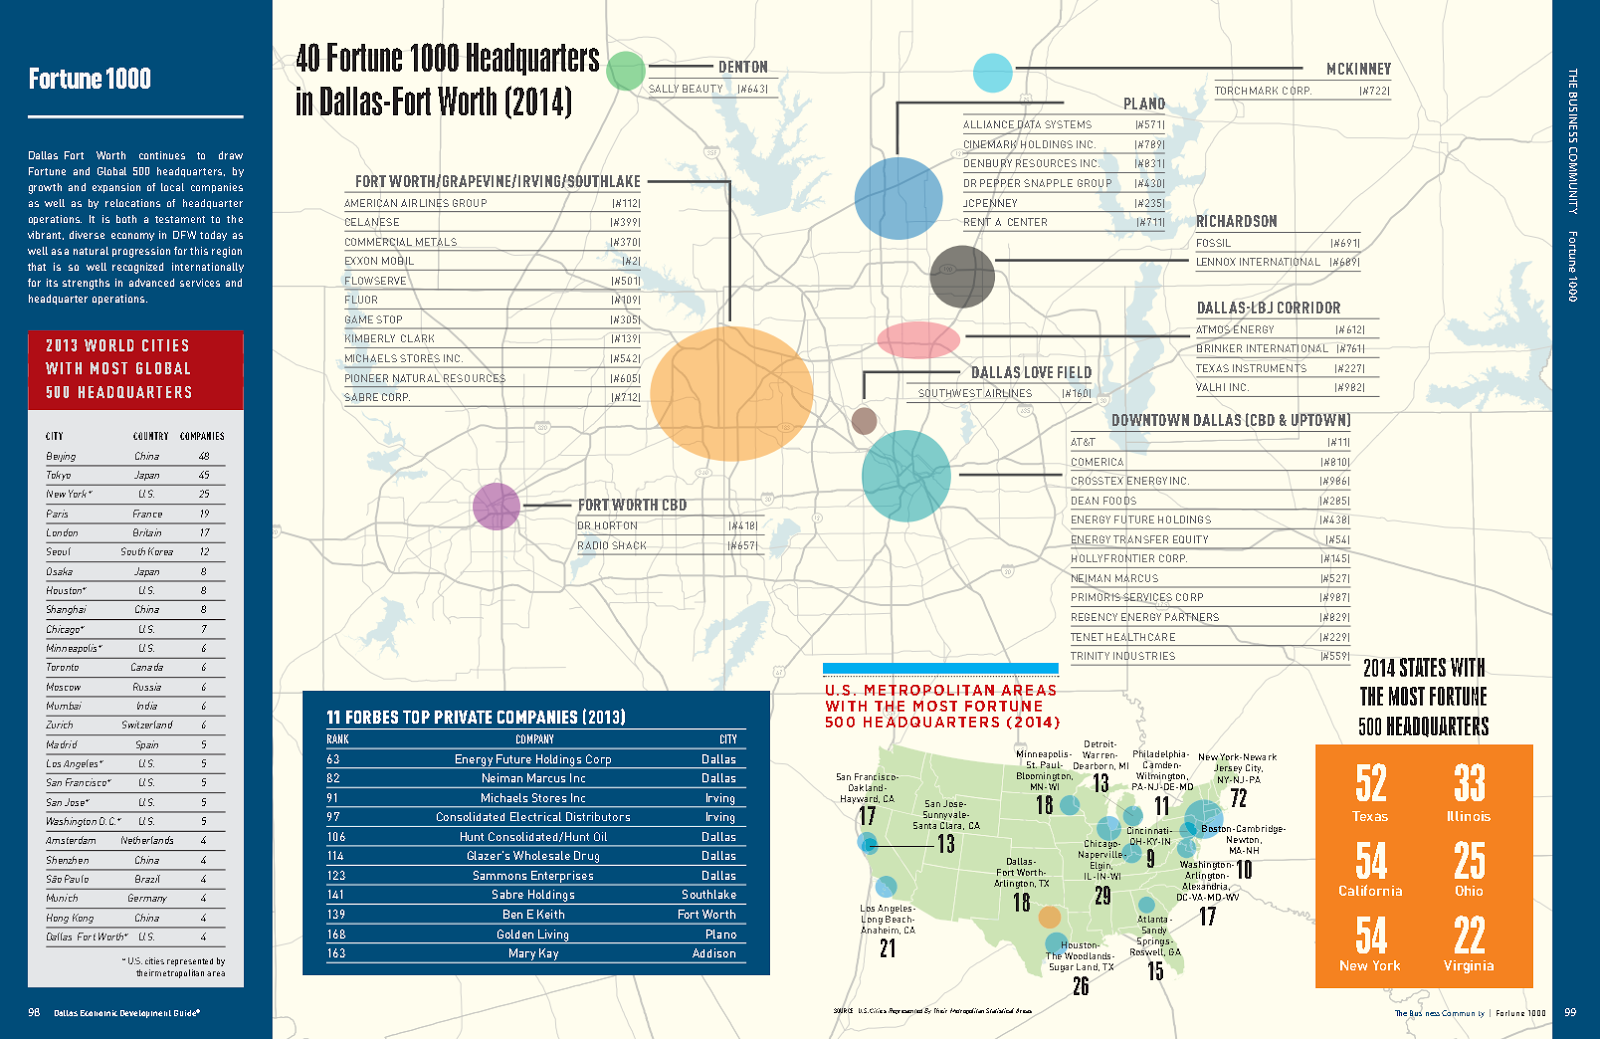 Fortune 1000 Companies headquartered in Dallas-Fort Worth